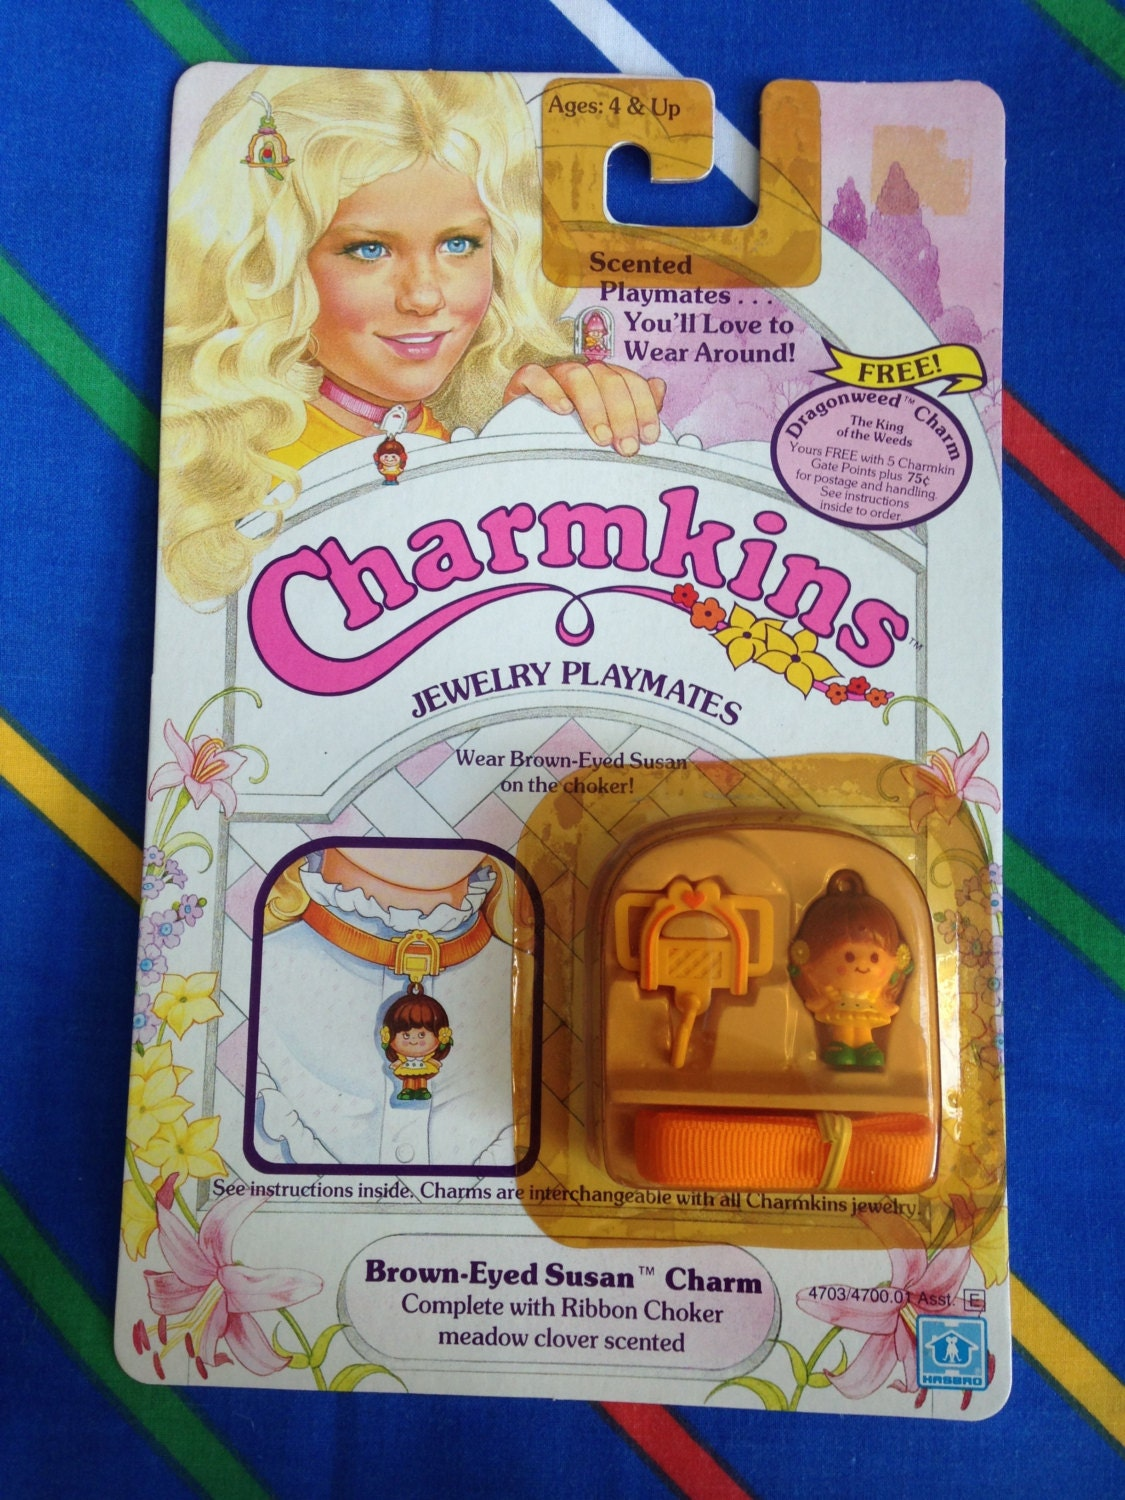 Vintage 1984 Charmkins BROWN EYED SUSAN miniature doll 1980s Hasbro ribbon chocker necklace charm MoC mint rare Factory Sealed scented new